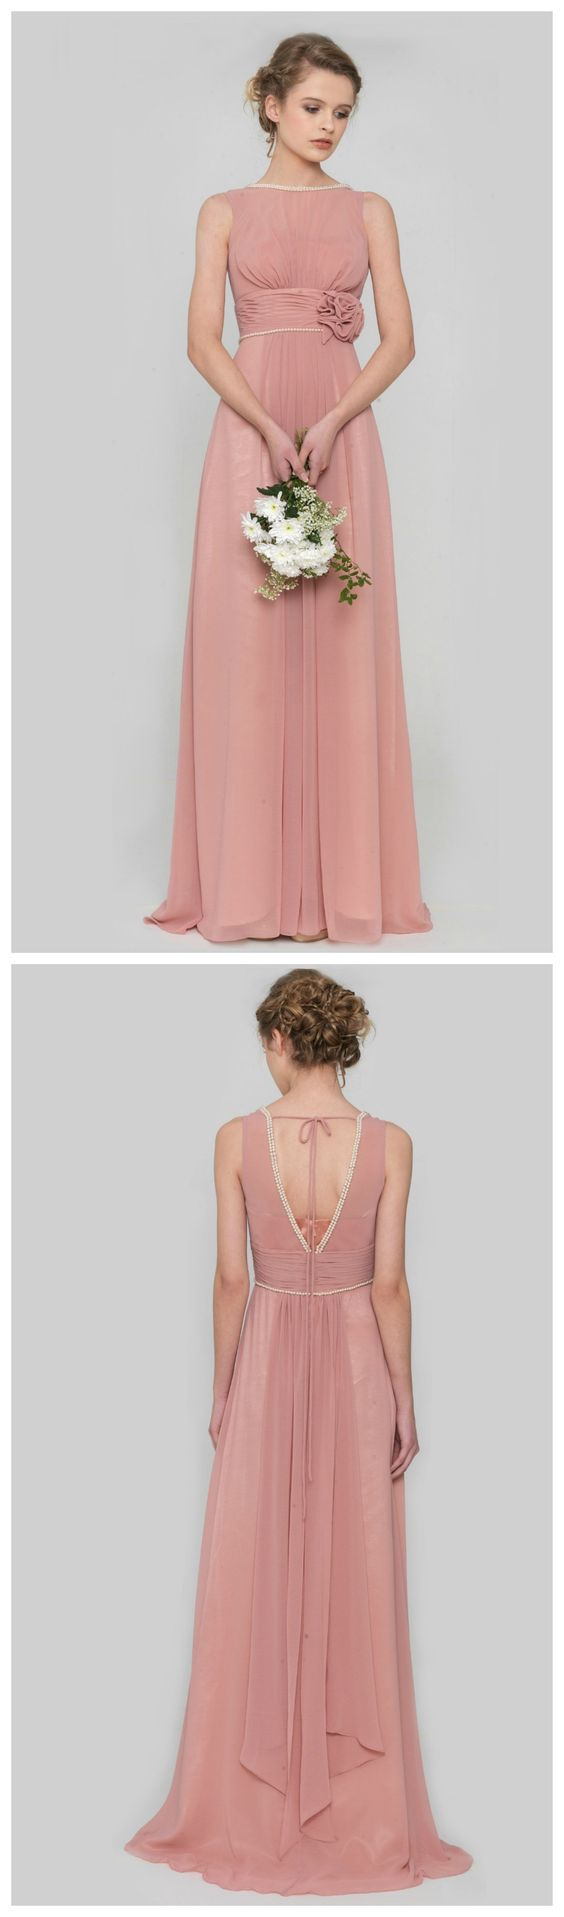 bridesmaid dresses moderne cork